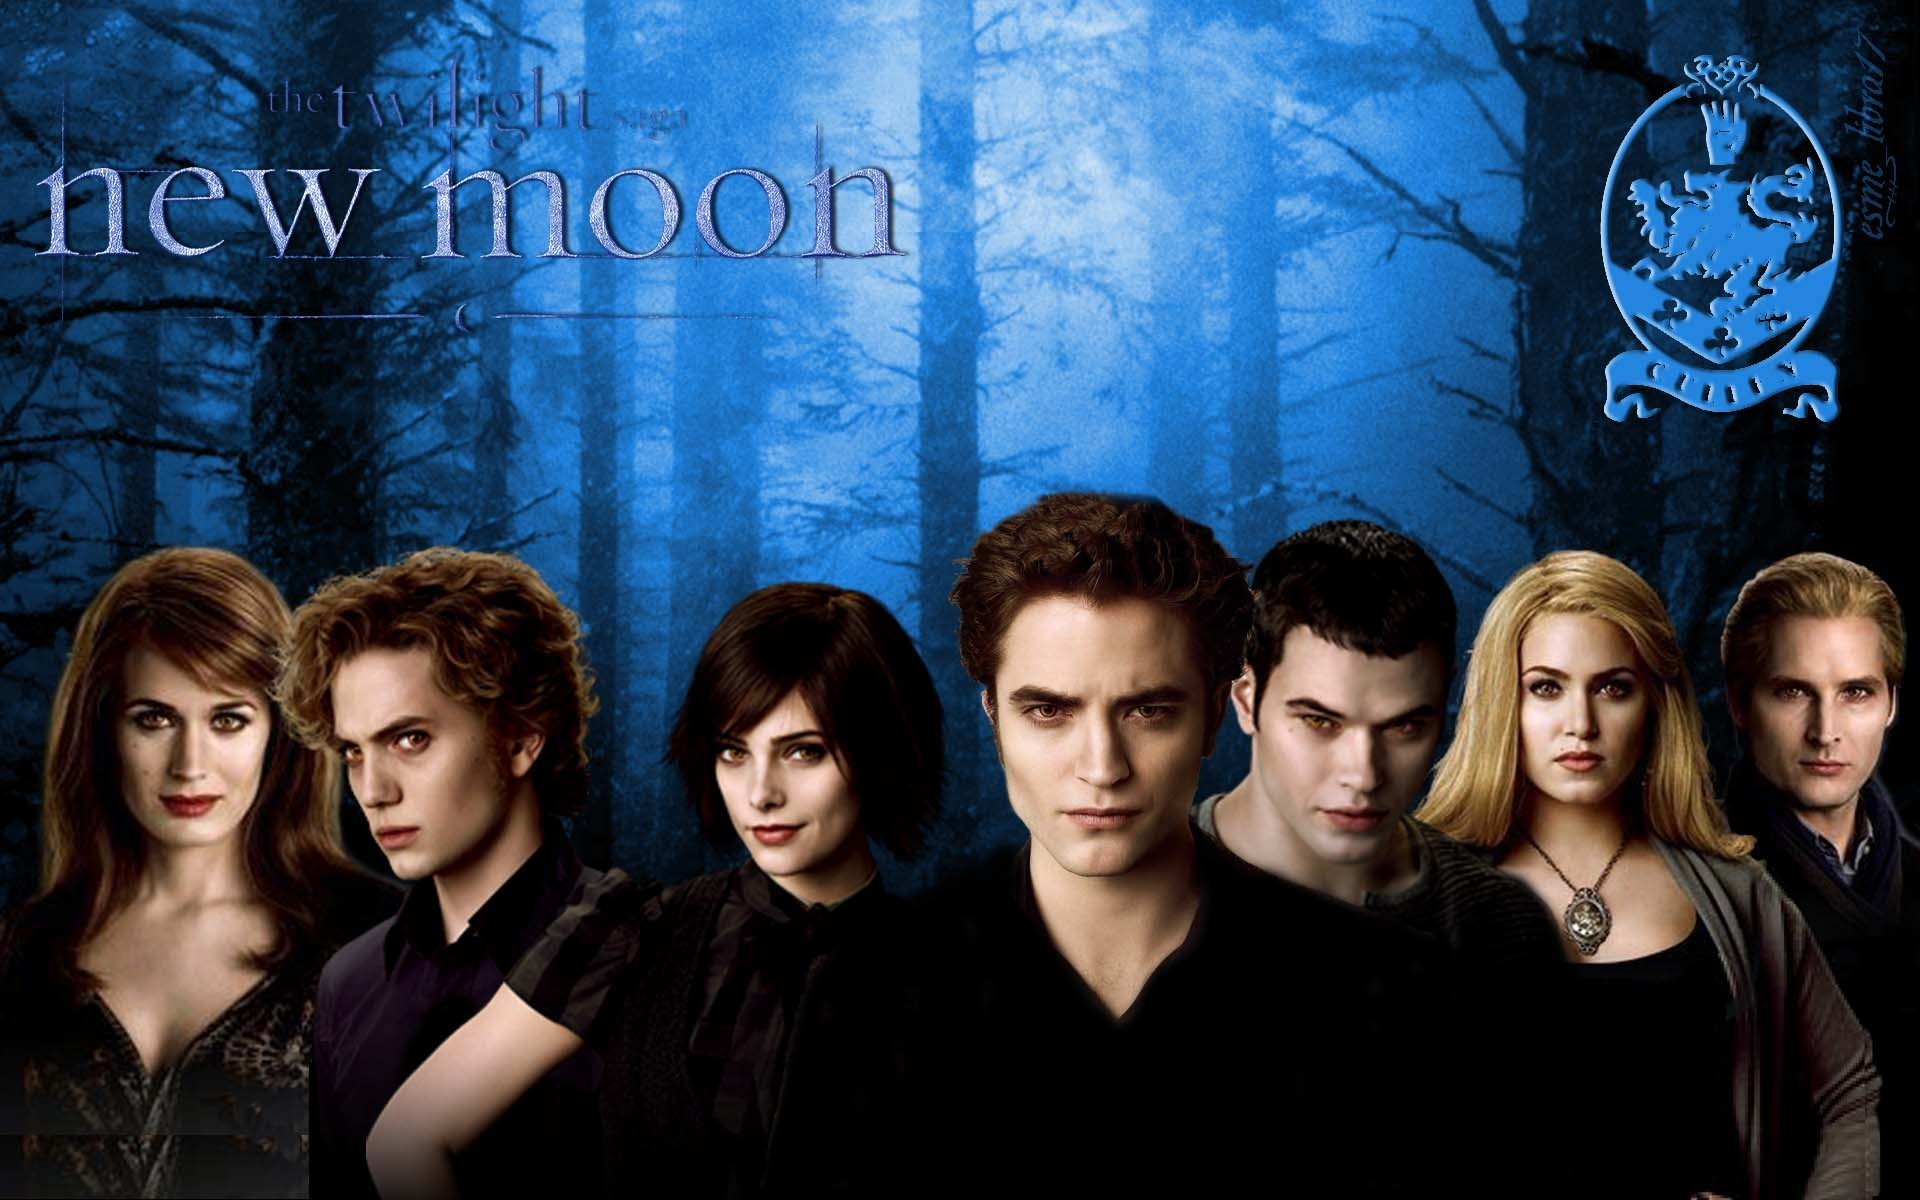 jacob love cullens -play emmett -party alice -stare edward lol